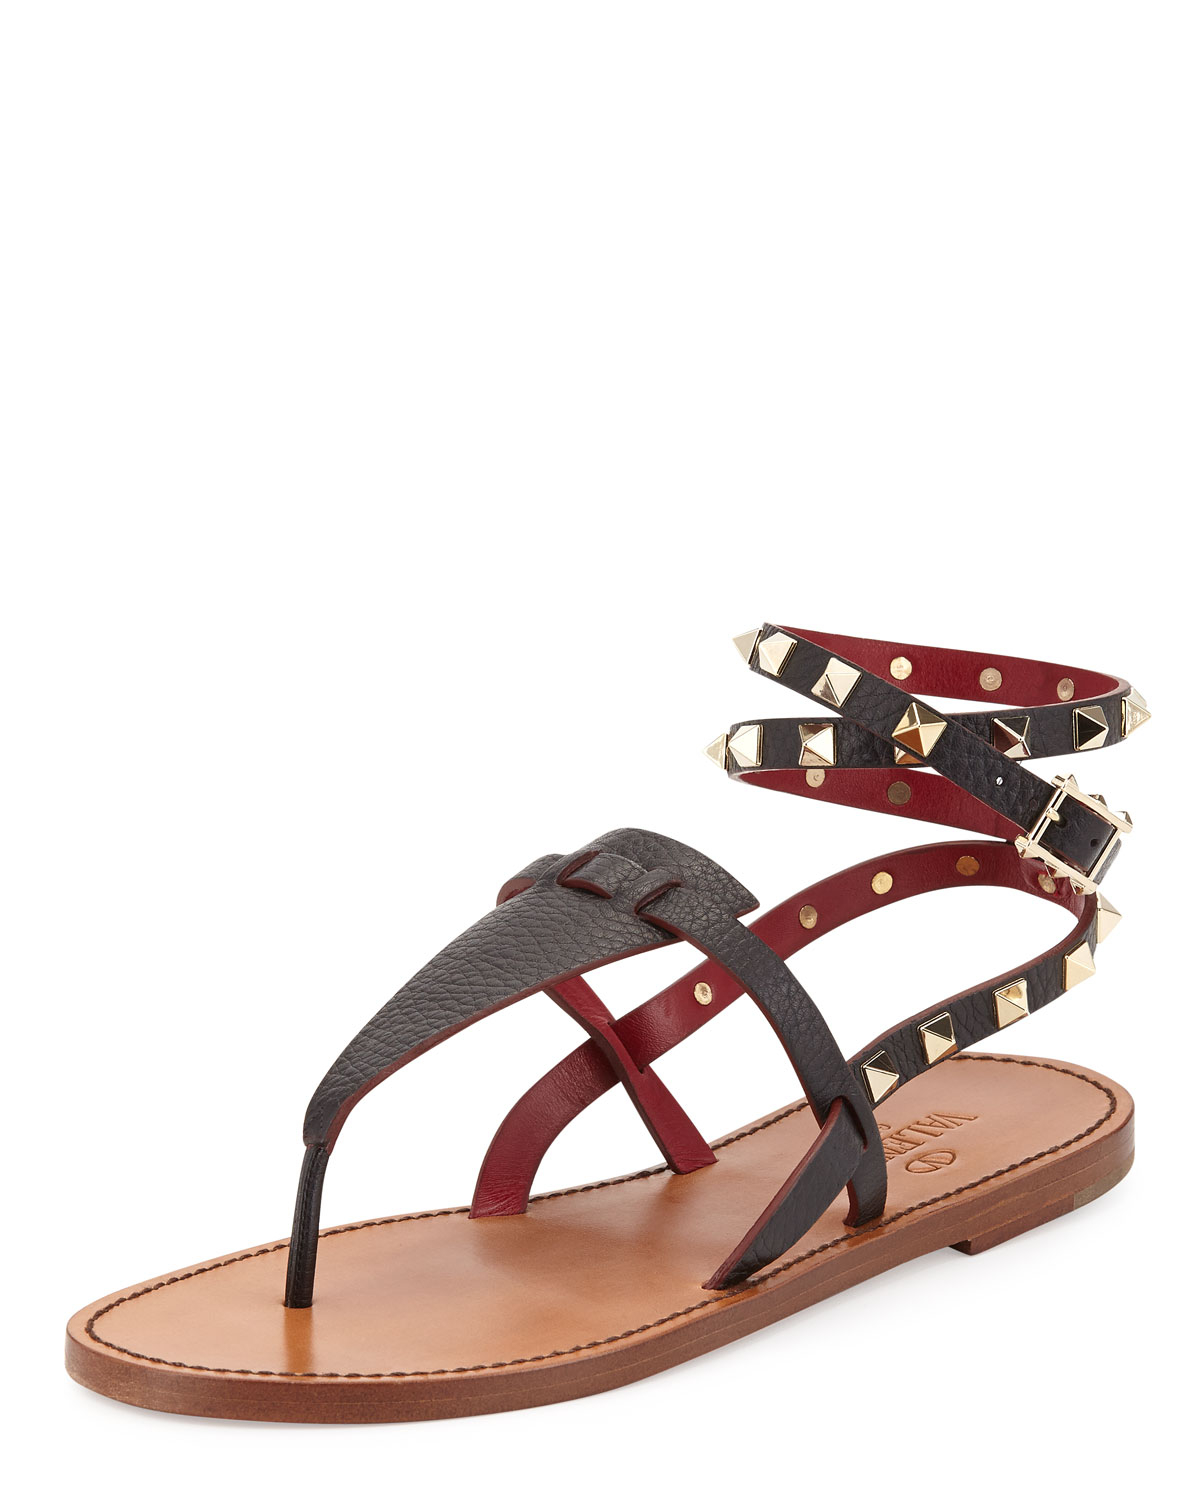 1773614d6 Lyst - Valentino Rockstud Ankle-Wrap Thong Sandal in Black